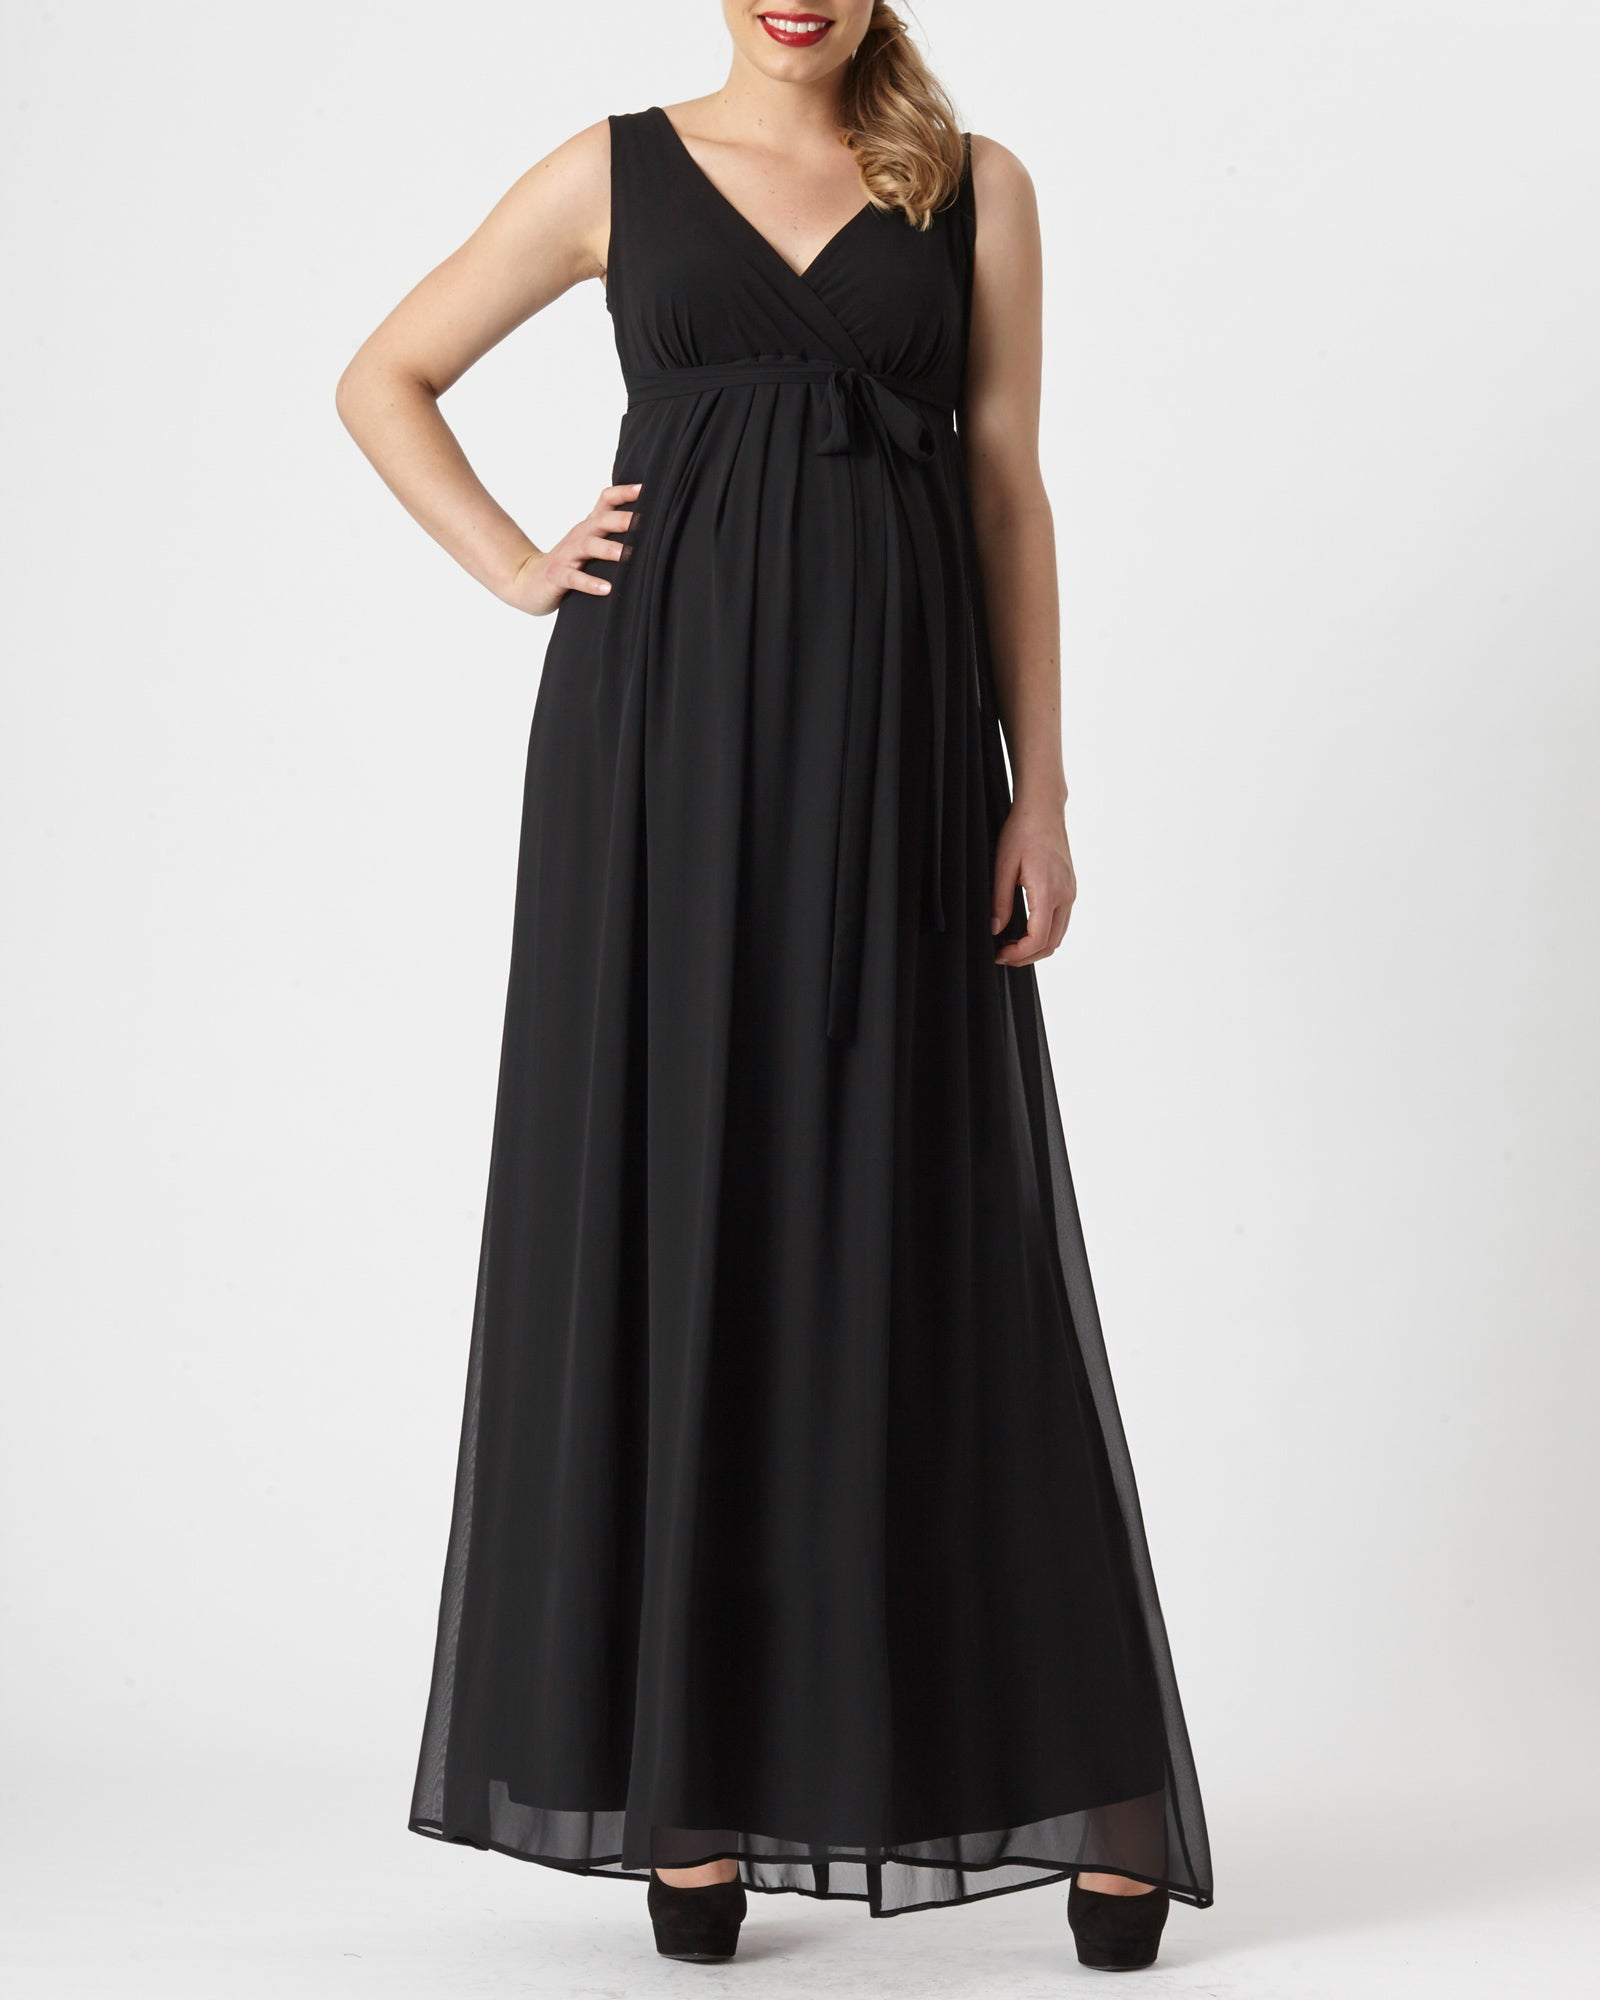 Romance Crossover Maxi (outlet)